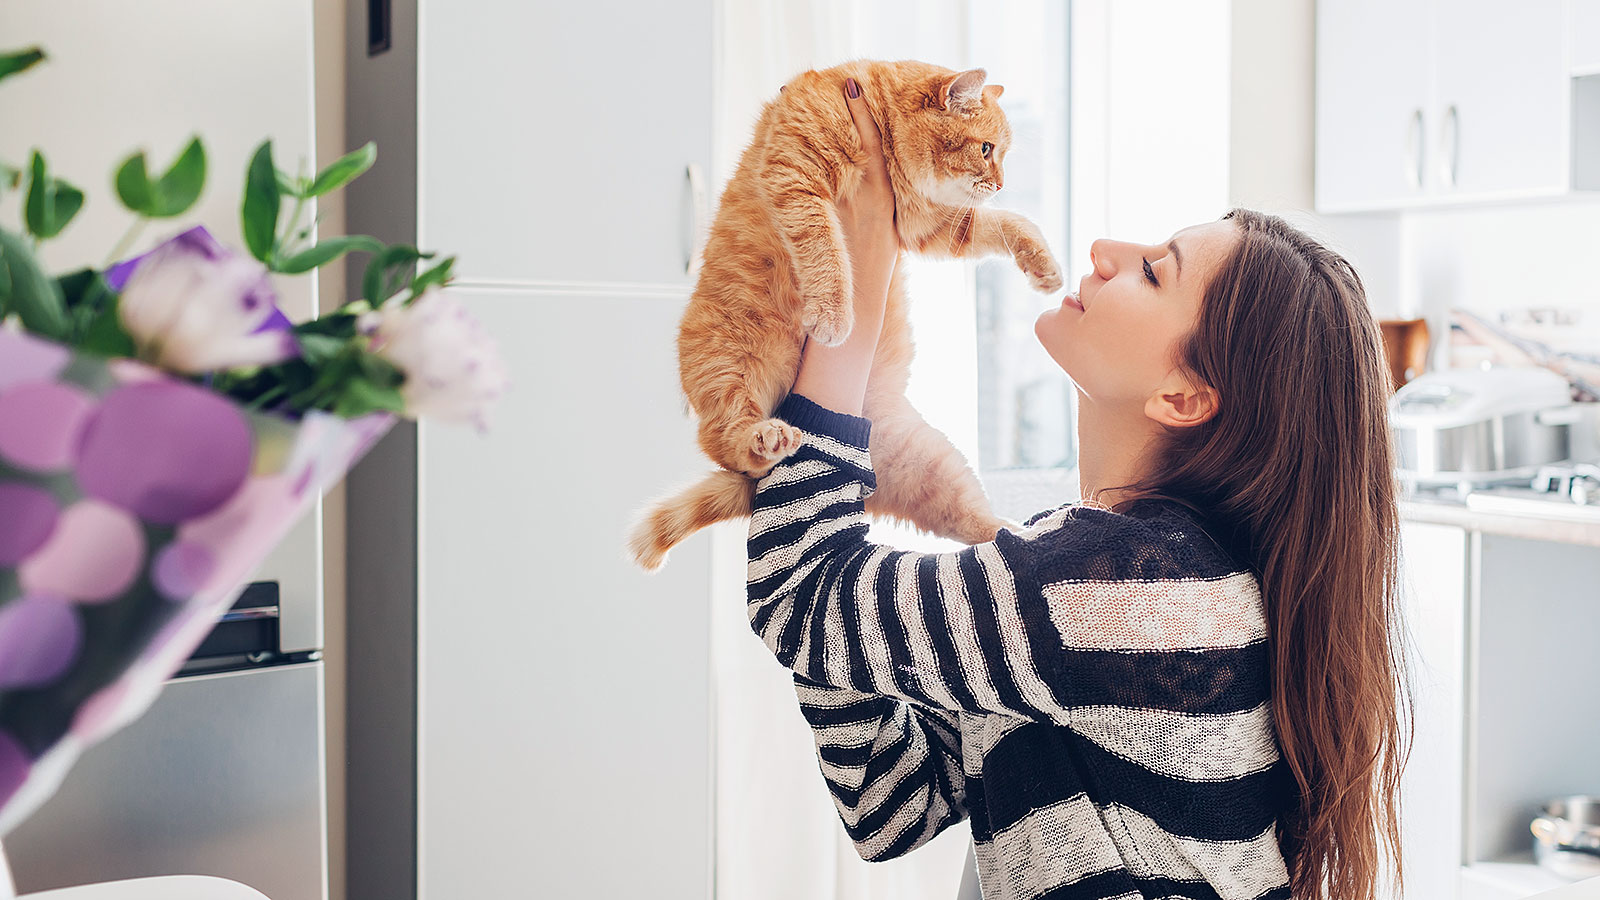 Study confirms suspicions: Cat people are more enthusiastic than dog people